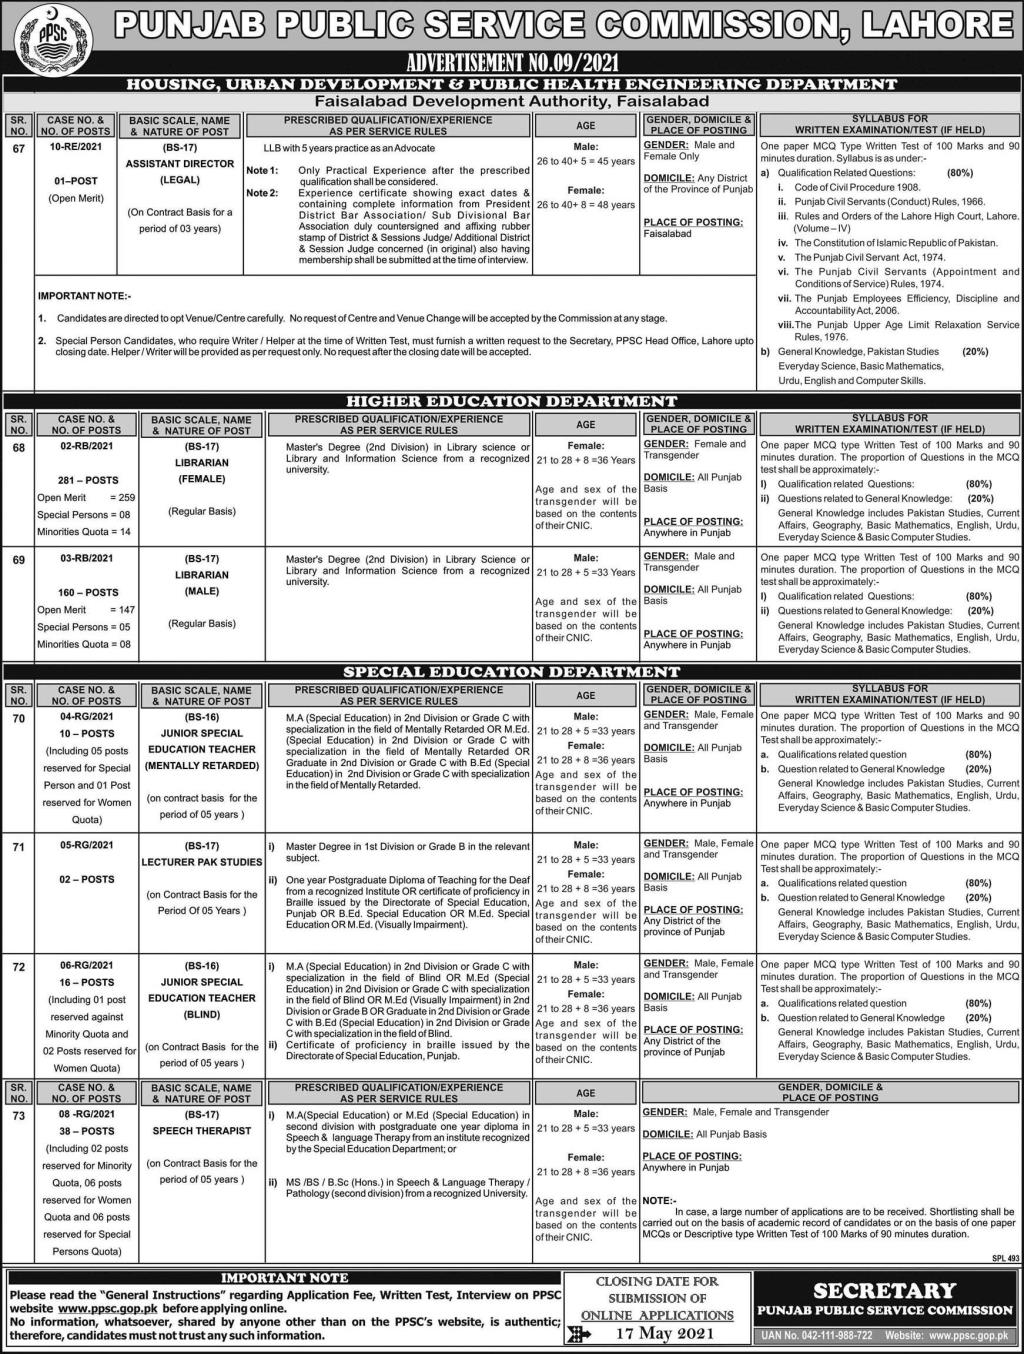 www.ppsc.jobs.com - PPSC Advertisement No.09/2021 - www.ppsc.gop.pk Jobs 2021 - Punjab Public Service Commission PPSC April 2021 Jobs